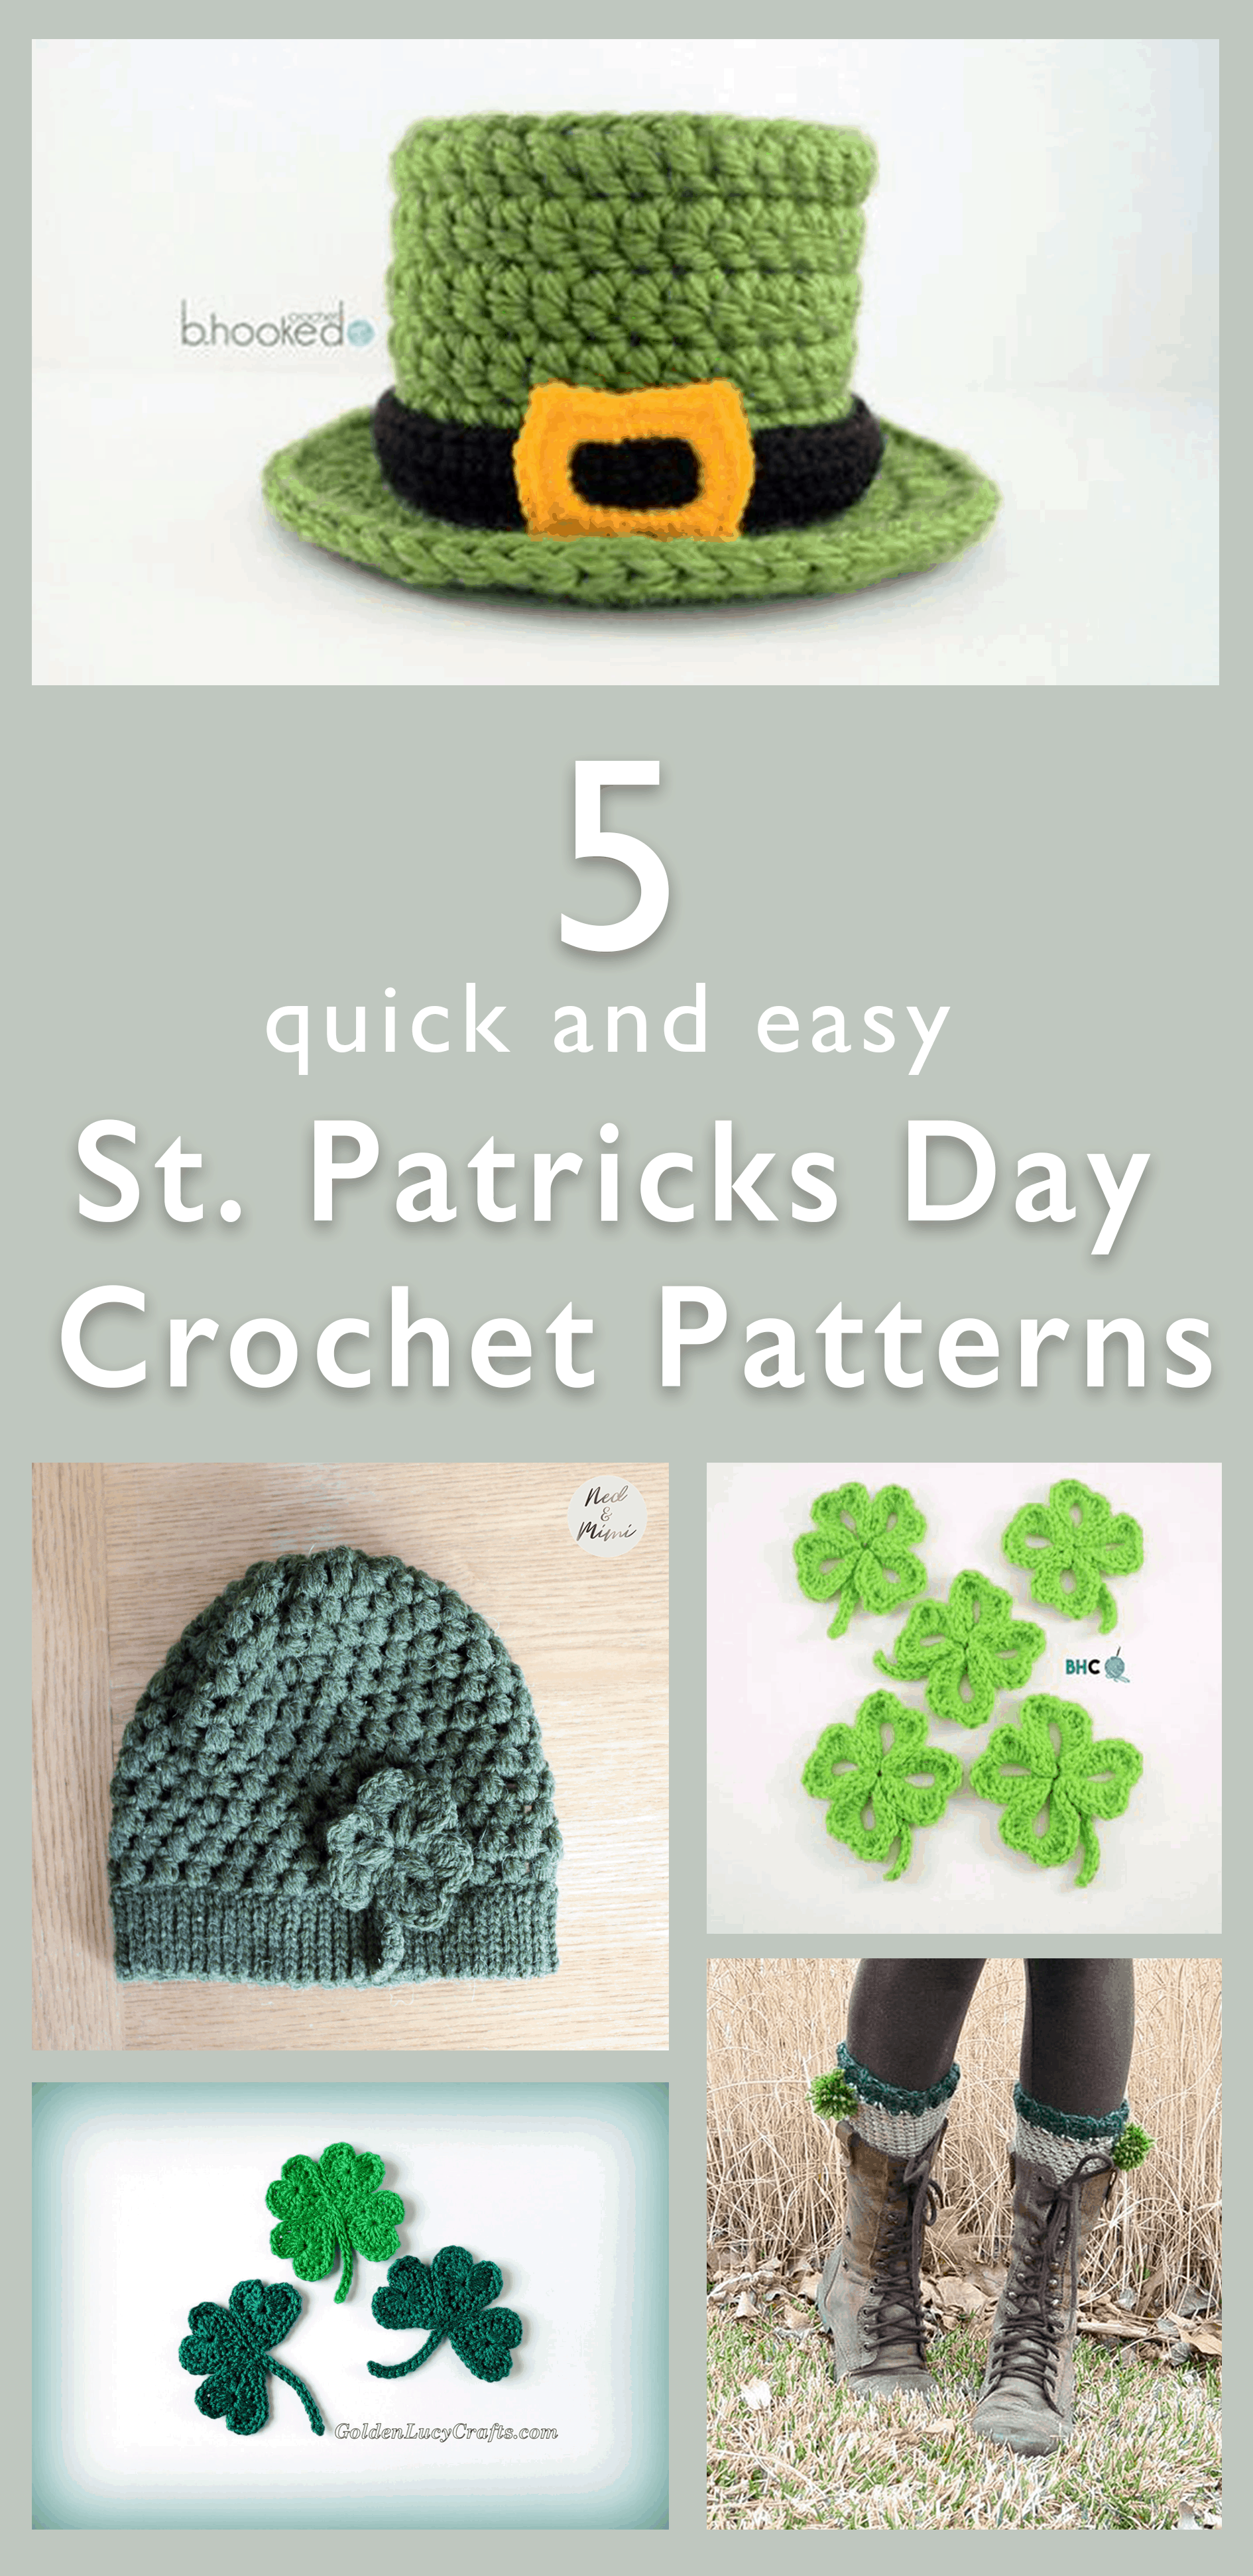 5 quick and easy st. patrick's day crochet patterns